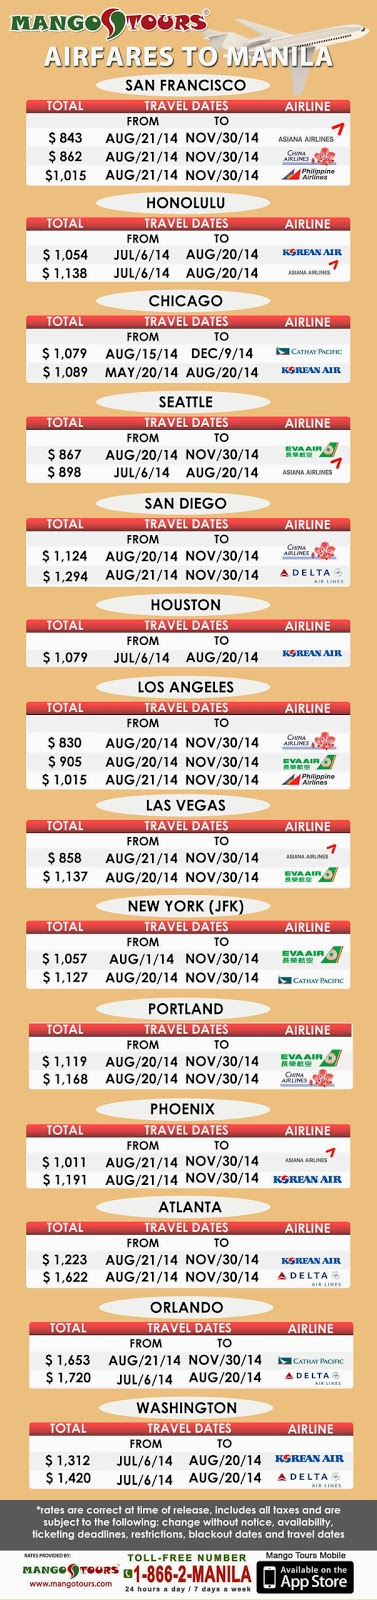 Current Airfares to Manila as of May 17